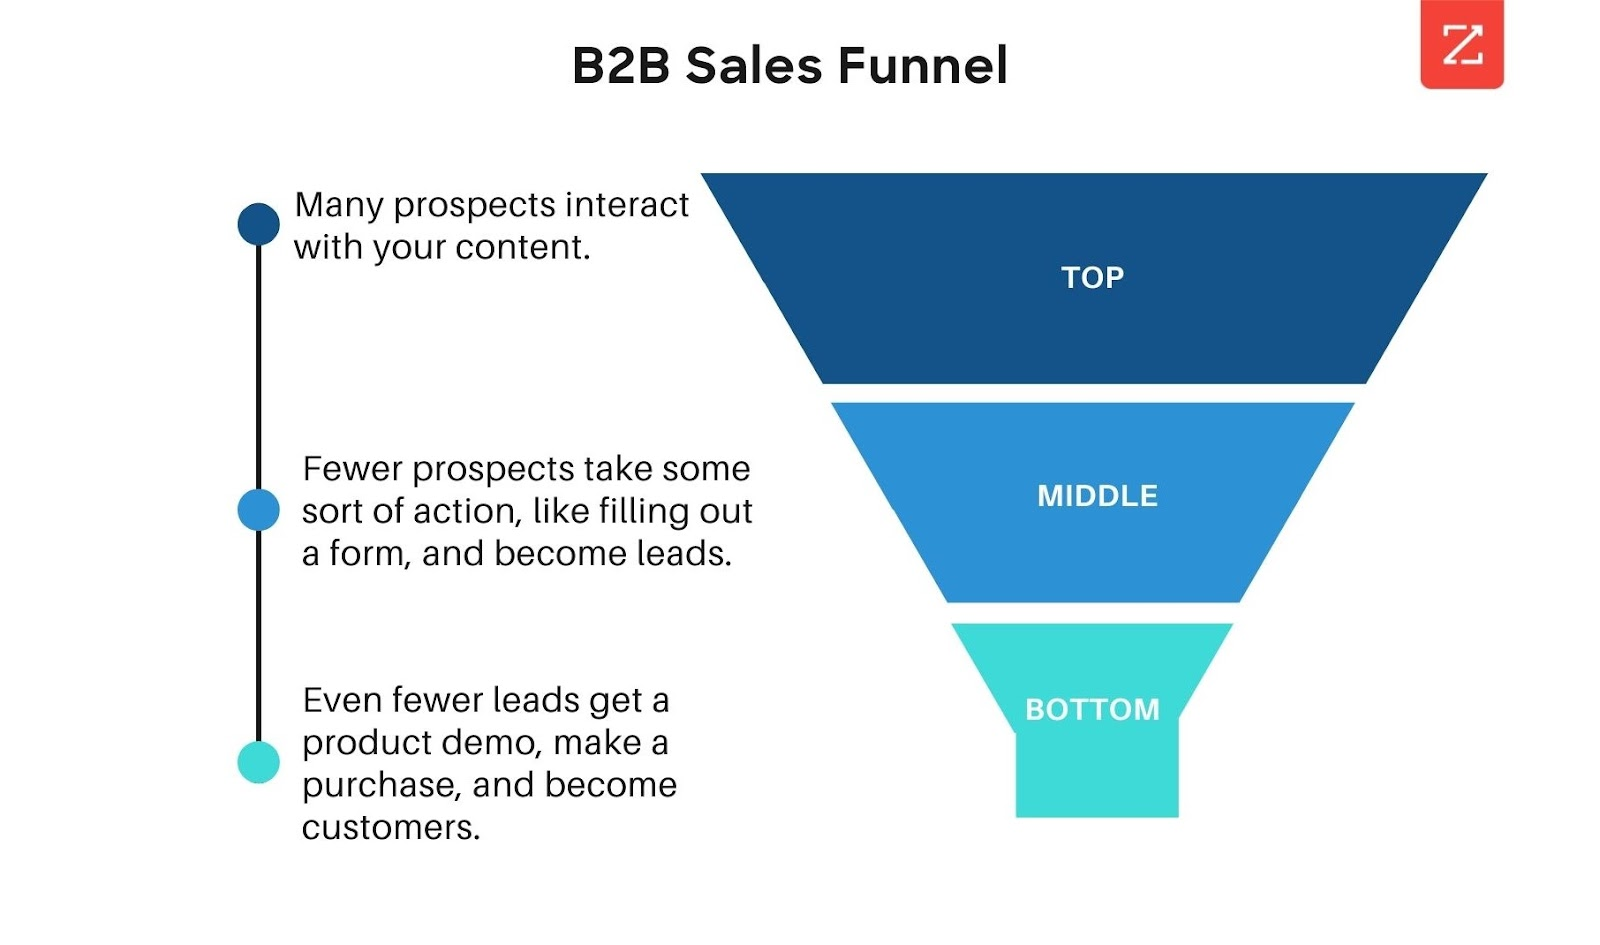 B2B Sales Funnel showing the levels: top, middle, and bottom.